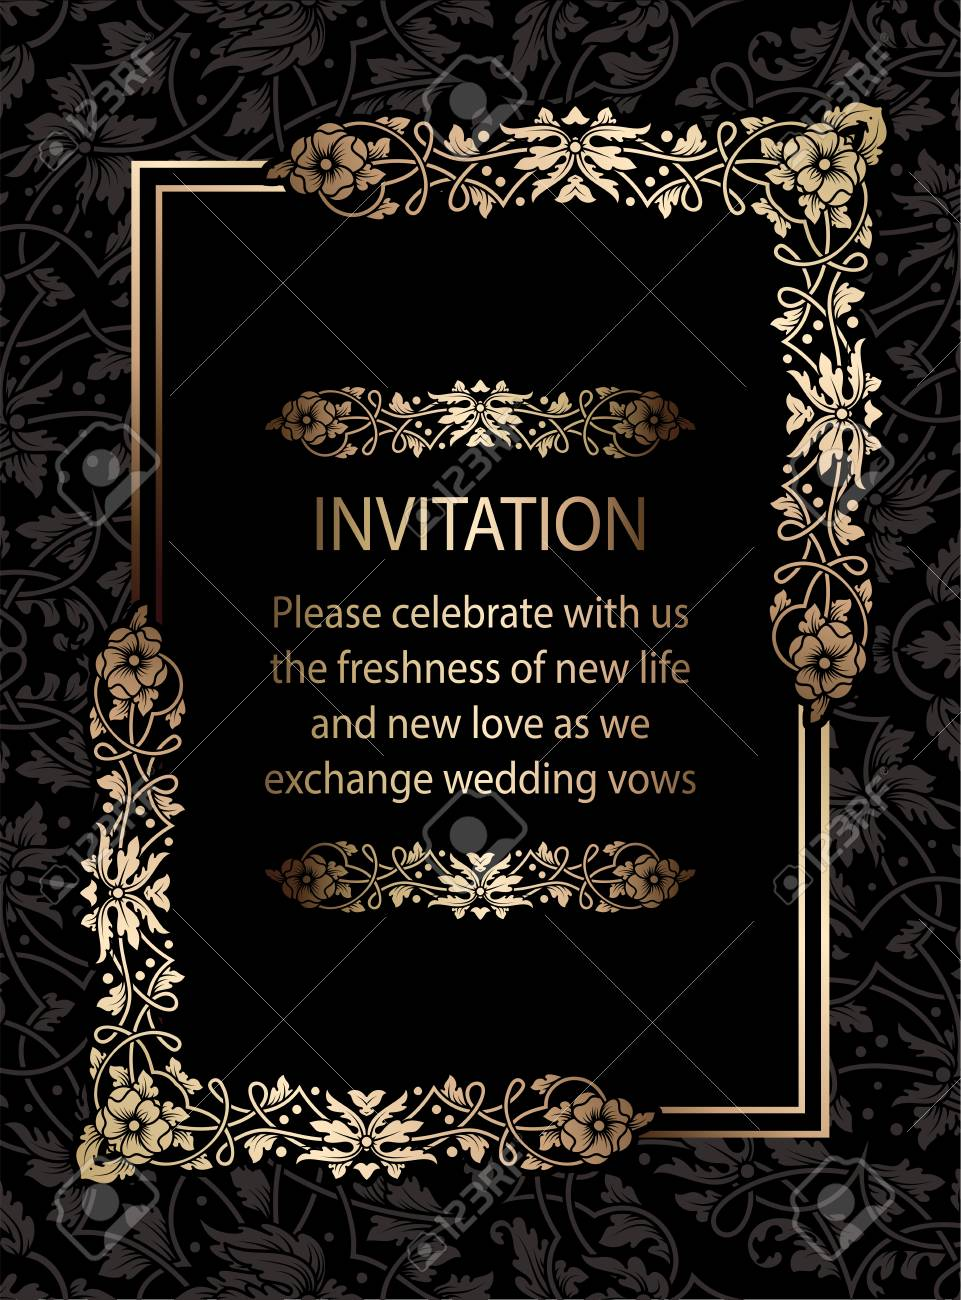 floral invitation card or background with antique luxury black